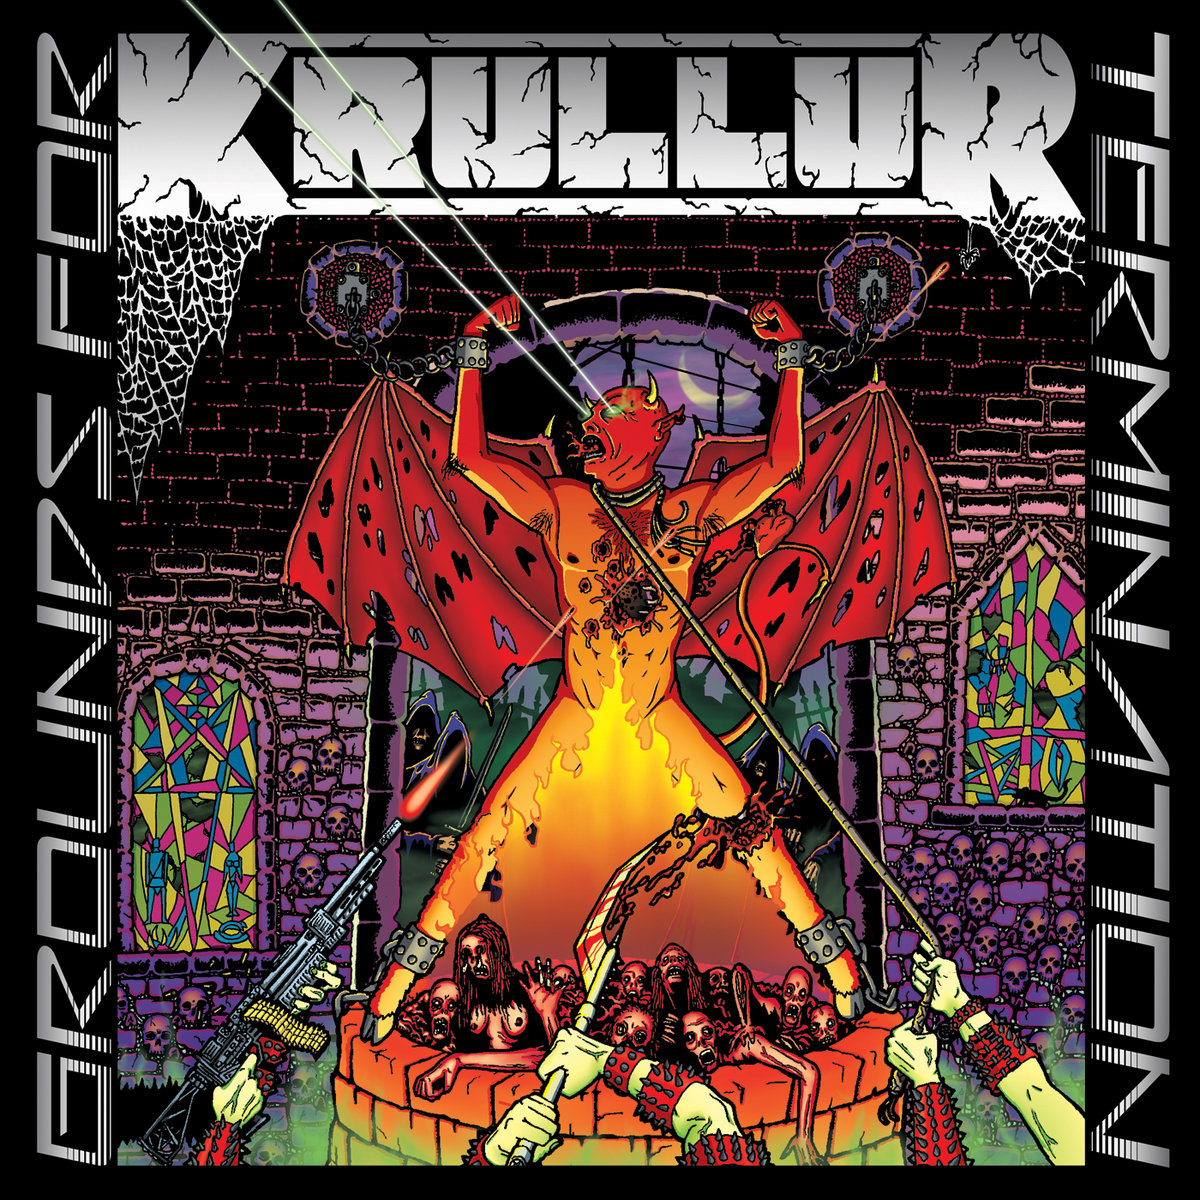 Krullur - Grounds For Termination